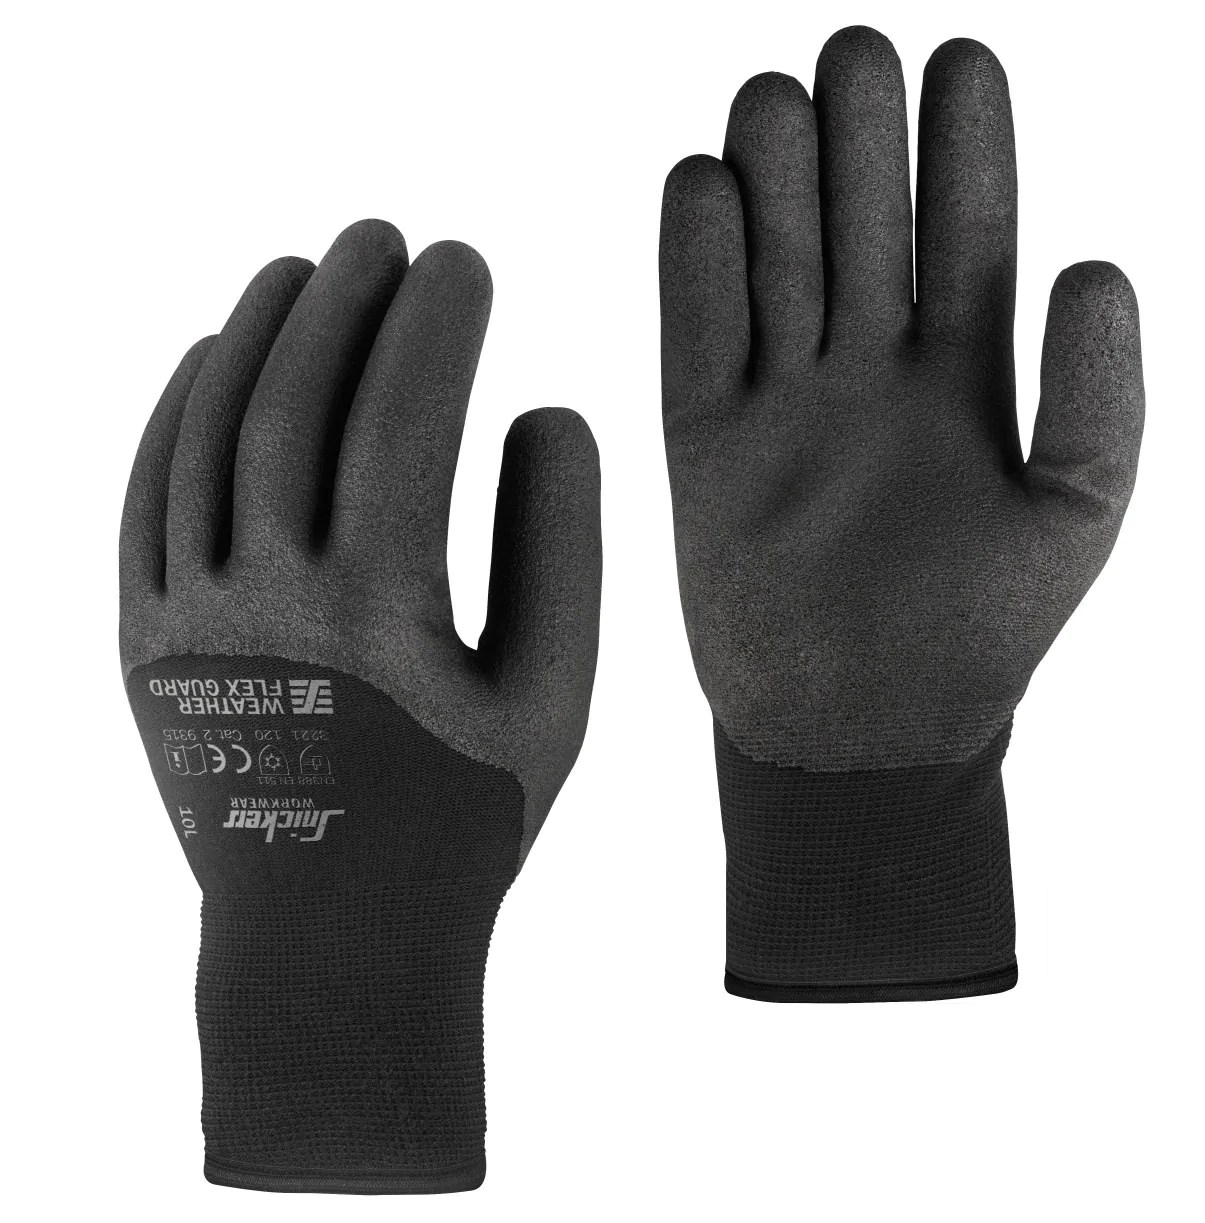 Gamma Handschoenen Snickers 9325 Weather Flex Guard Gloves Paar Palm En Knokkel Bescherming 10 Paar